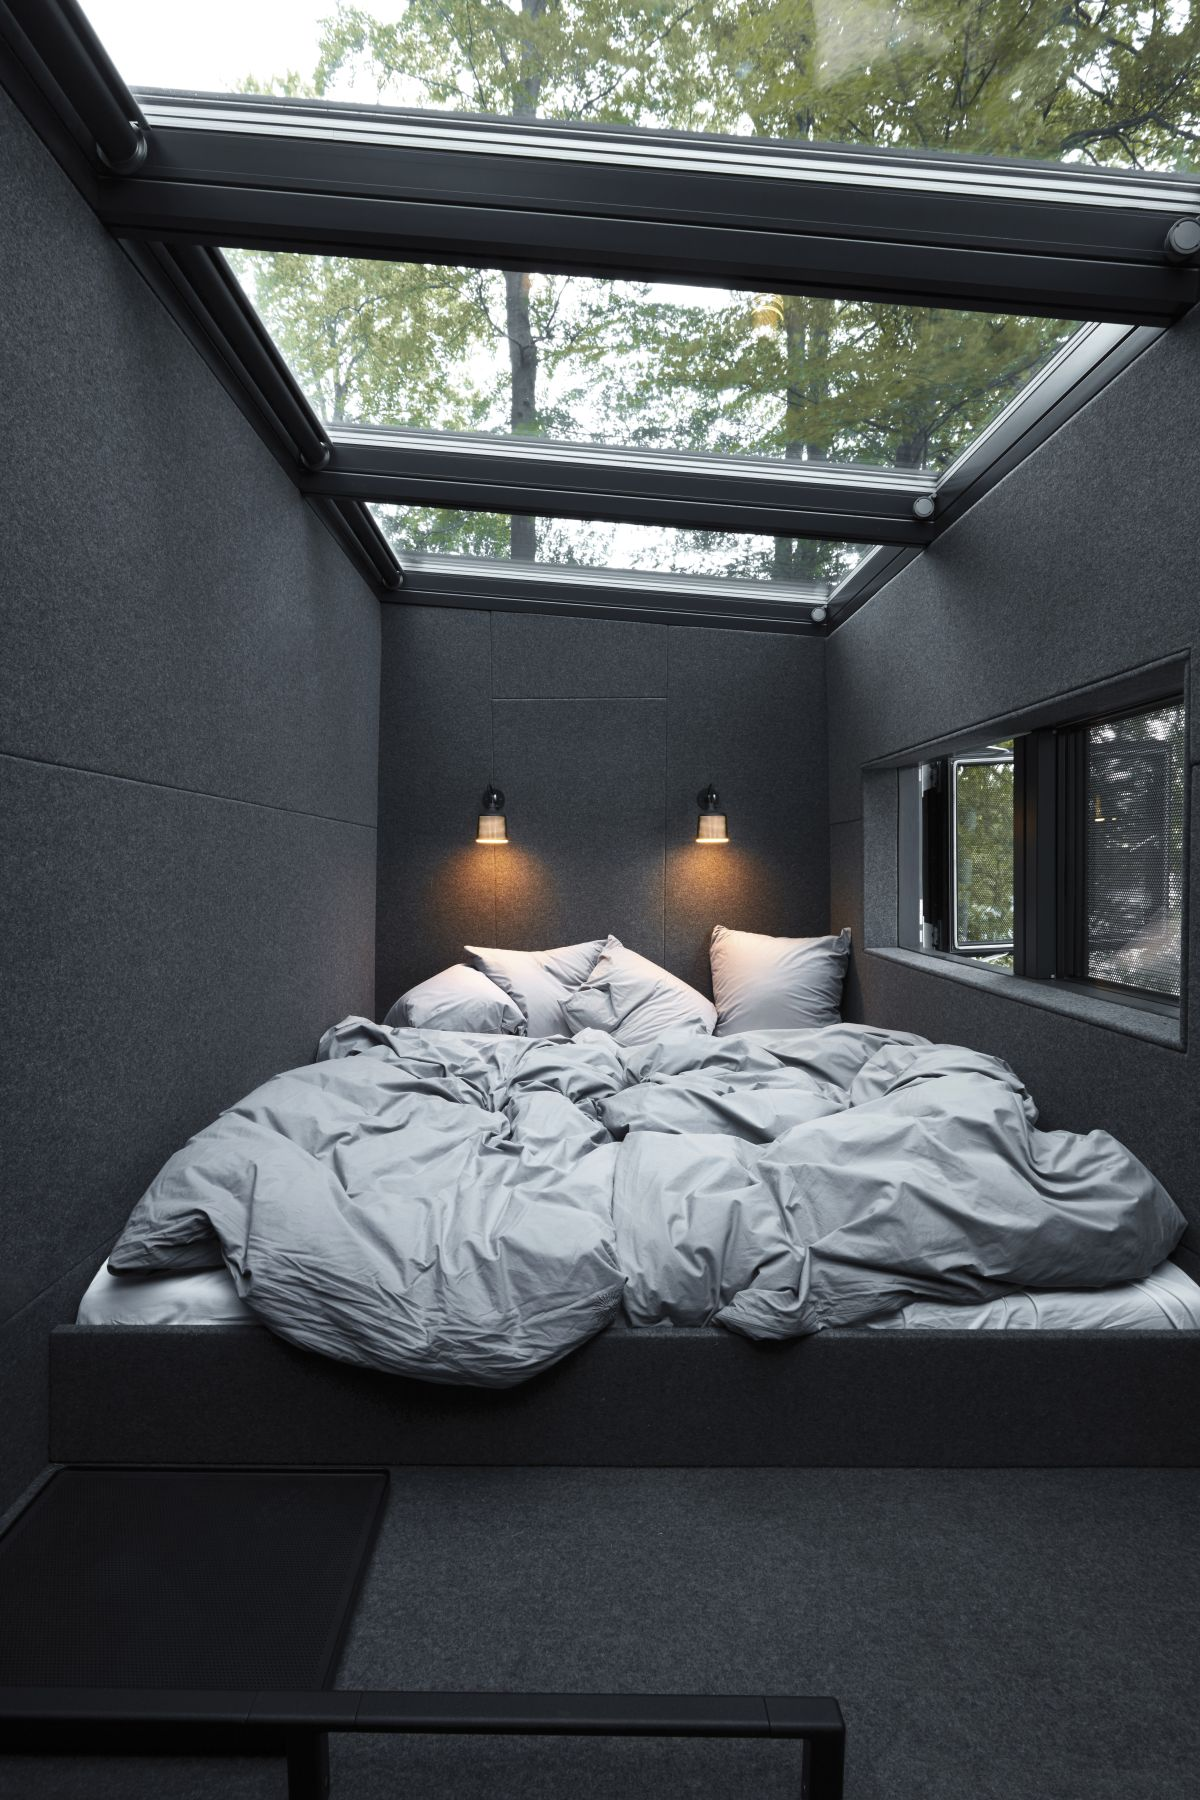 One of the protrusions on the roof houses a small and narrow sleeping loft with ceiling skylights